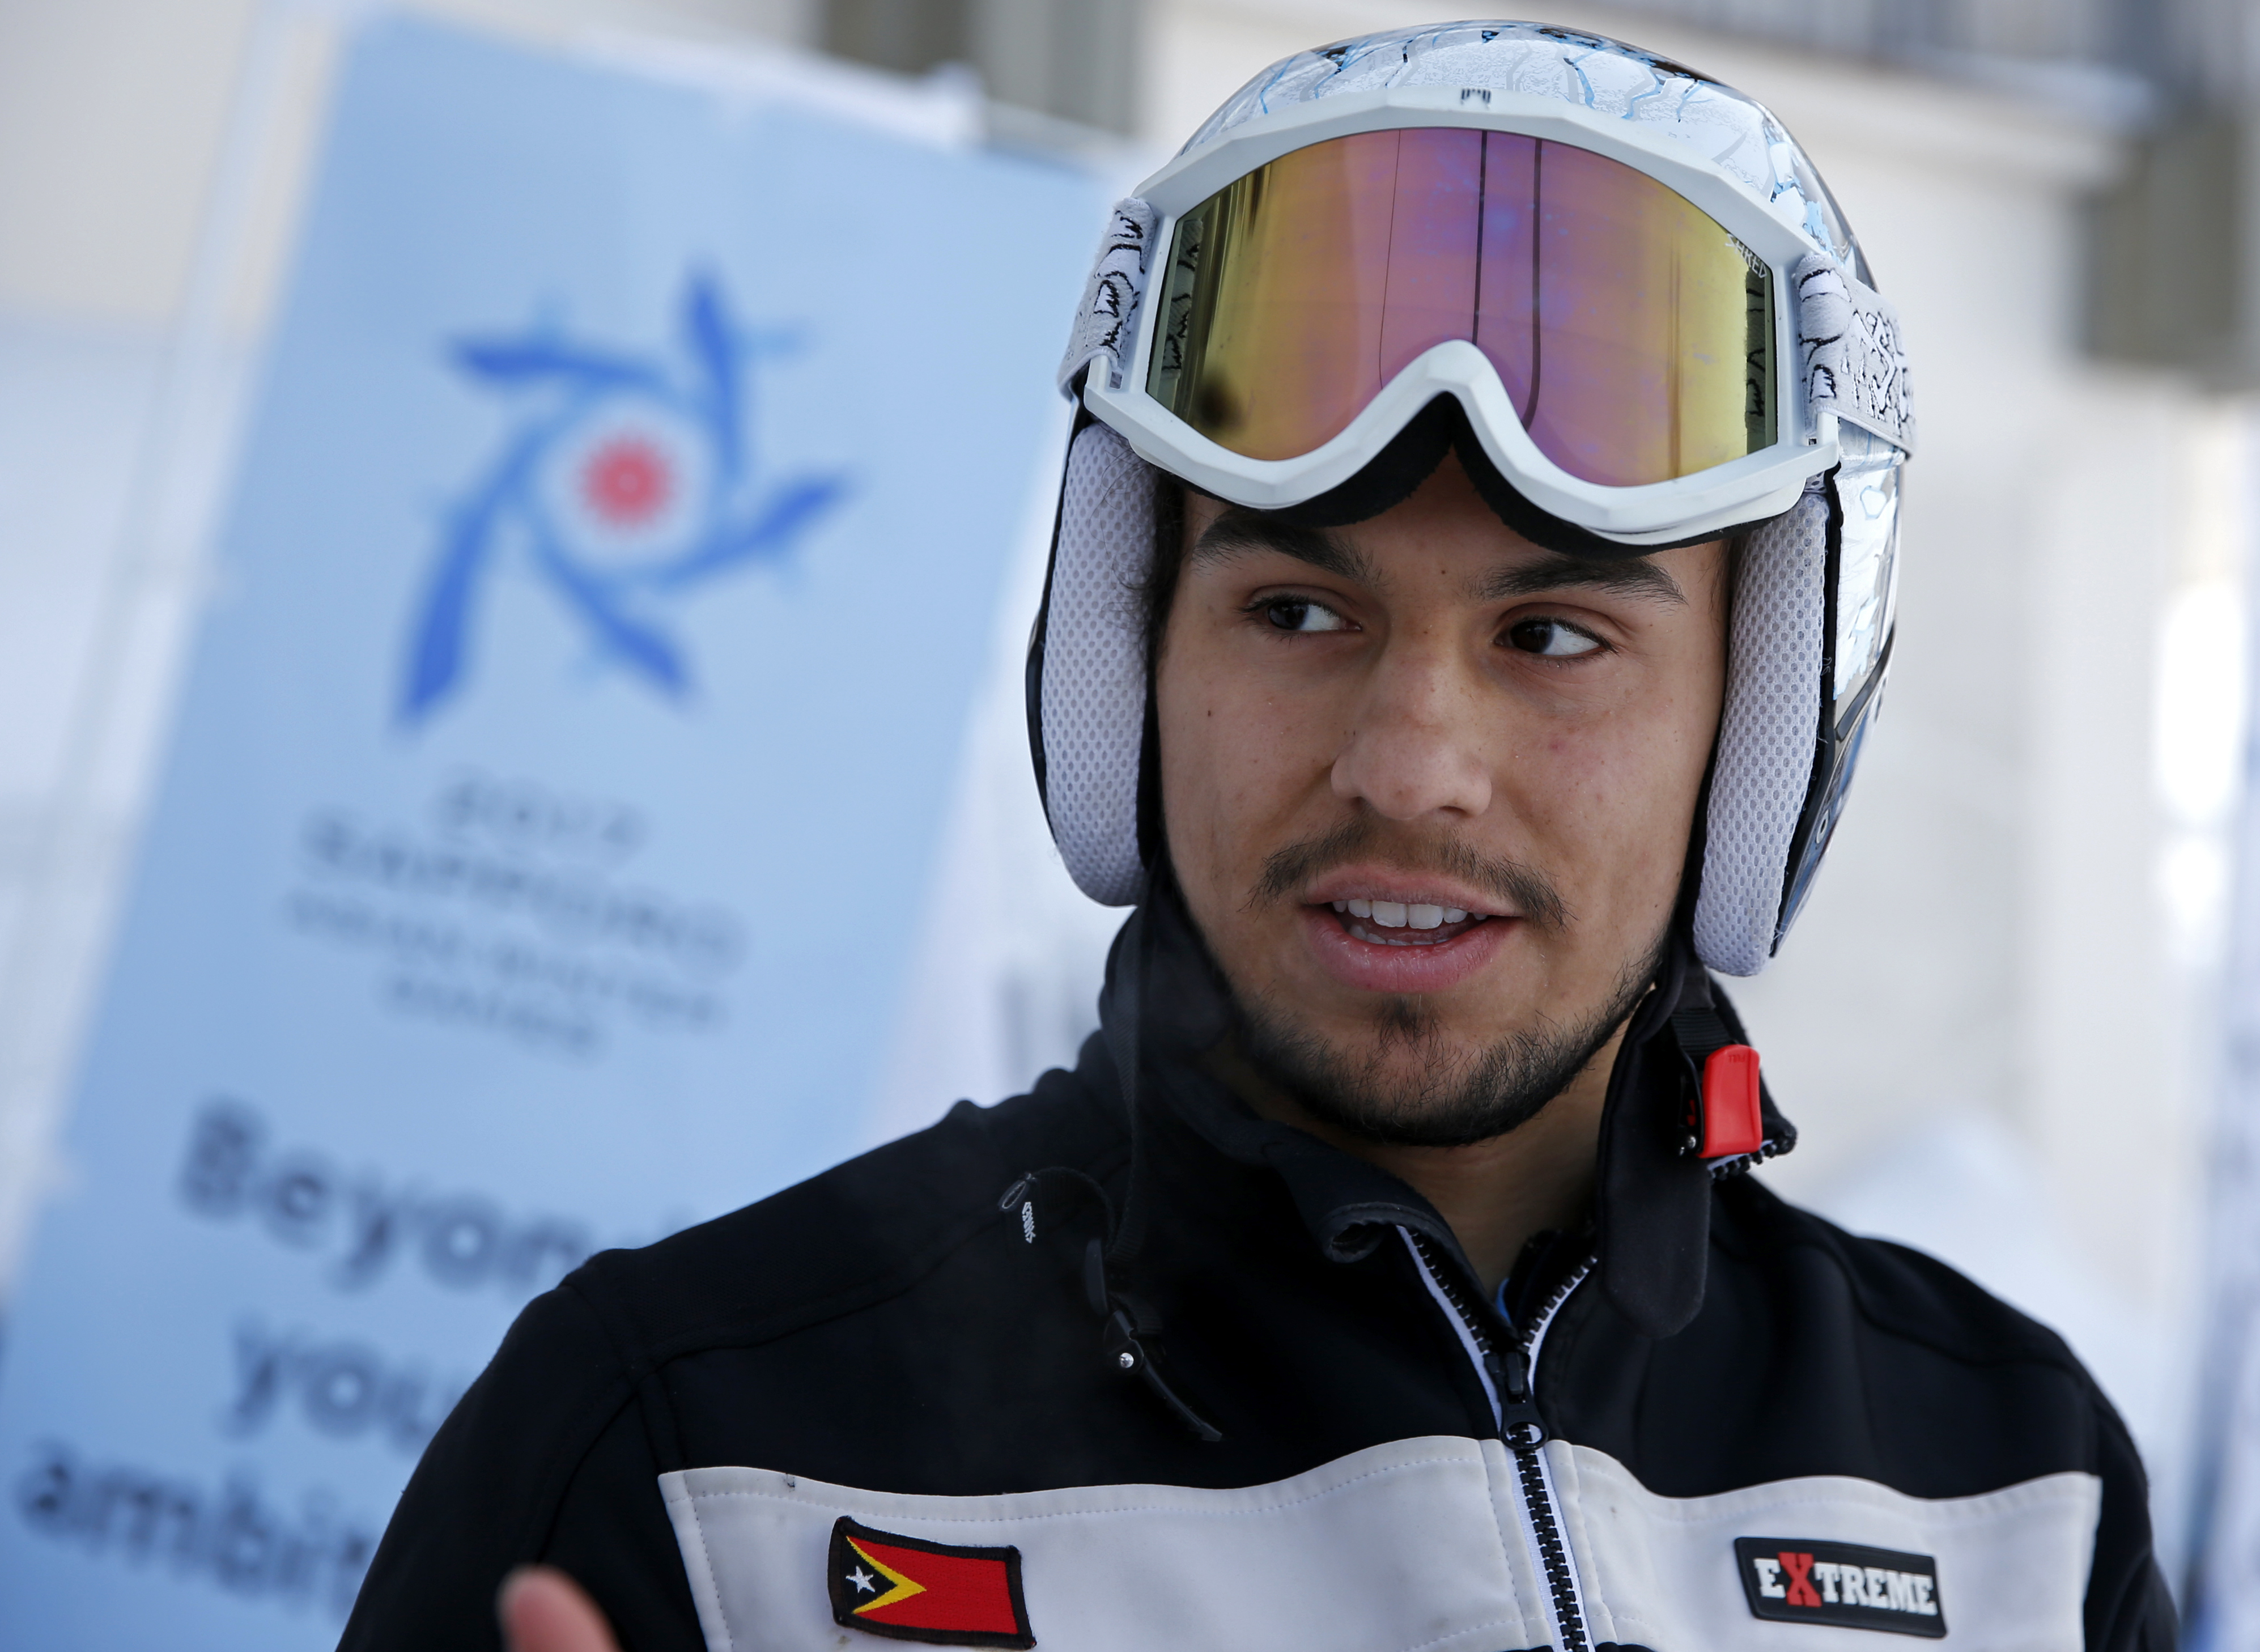 East Timor's Yohan Goutt Goncalves speaks during an interview, ahead of his alpine skiing men's giant slalom at the Asian Winter Games in Sapporo, northern Japan, Wednesday, Feb. 22, 2017. (AP Photo/Shuji Kajiyama)